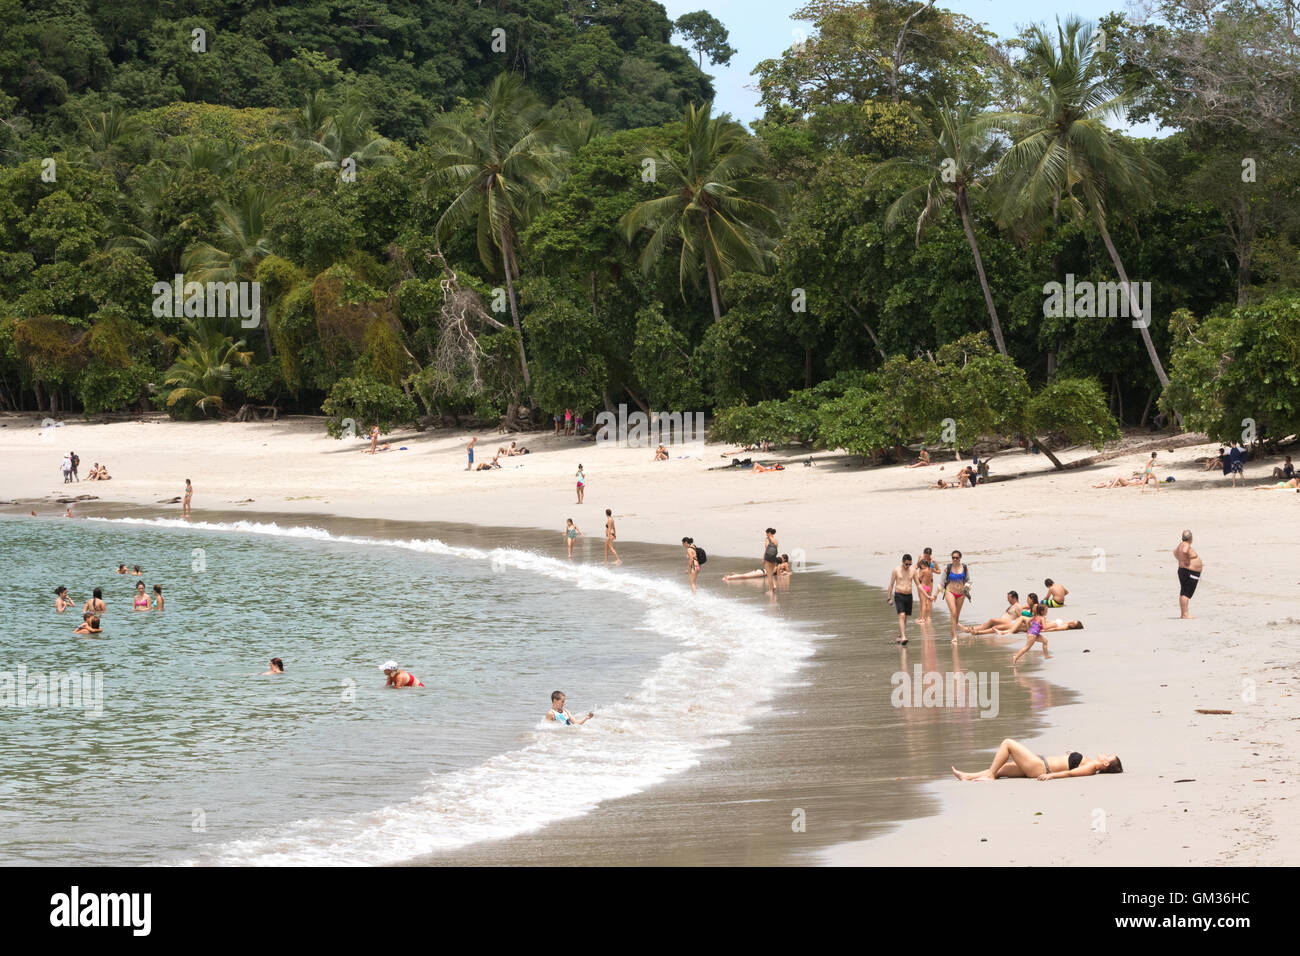 La plage de Manuel Antonio National Park, côte Pacifique, Costa Rica, Amérique Centrale Photo Stock